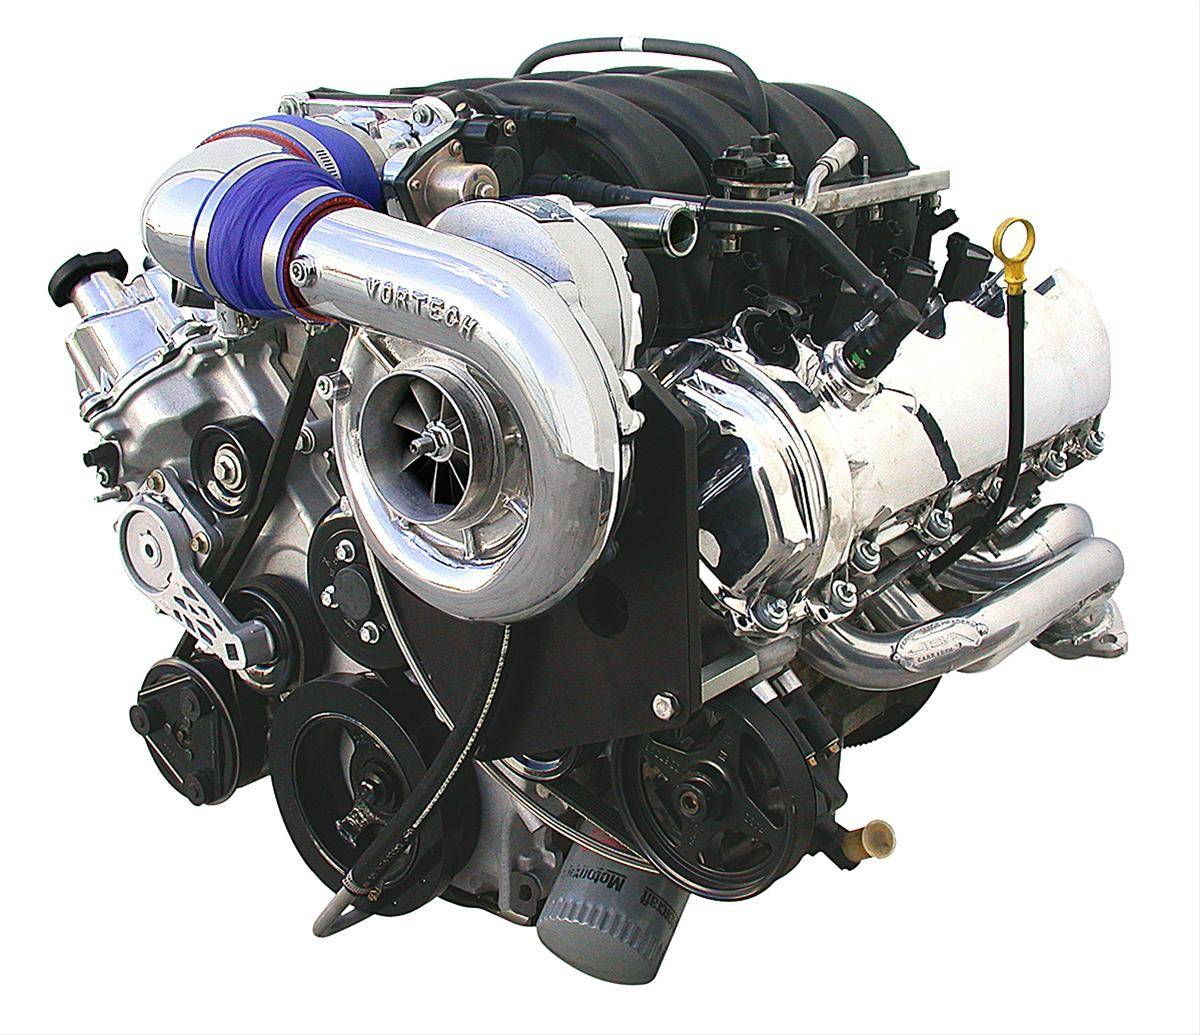 Vortech Supercharger Unit: Ford Mustang GT 2005-2006 4.6 3V Vortech Supercharger V-3